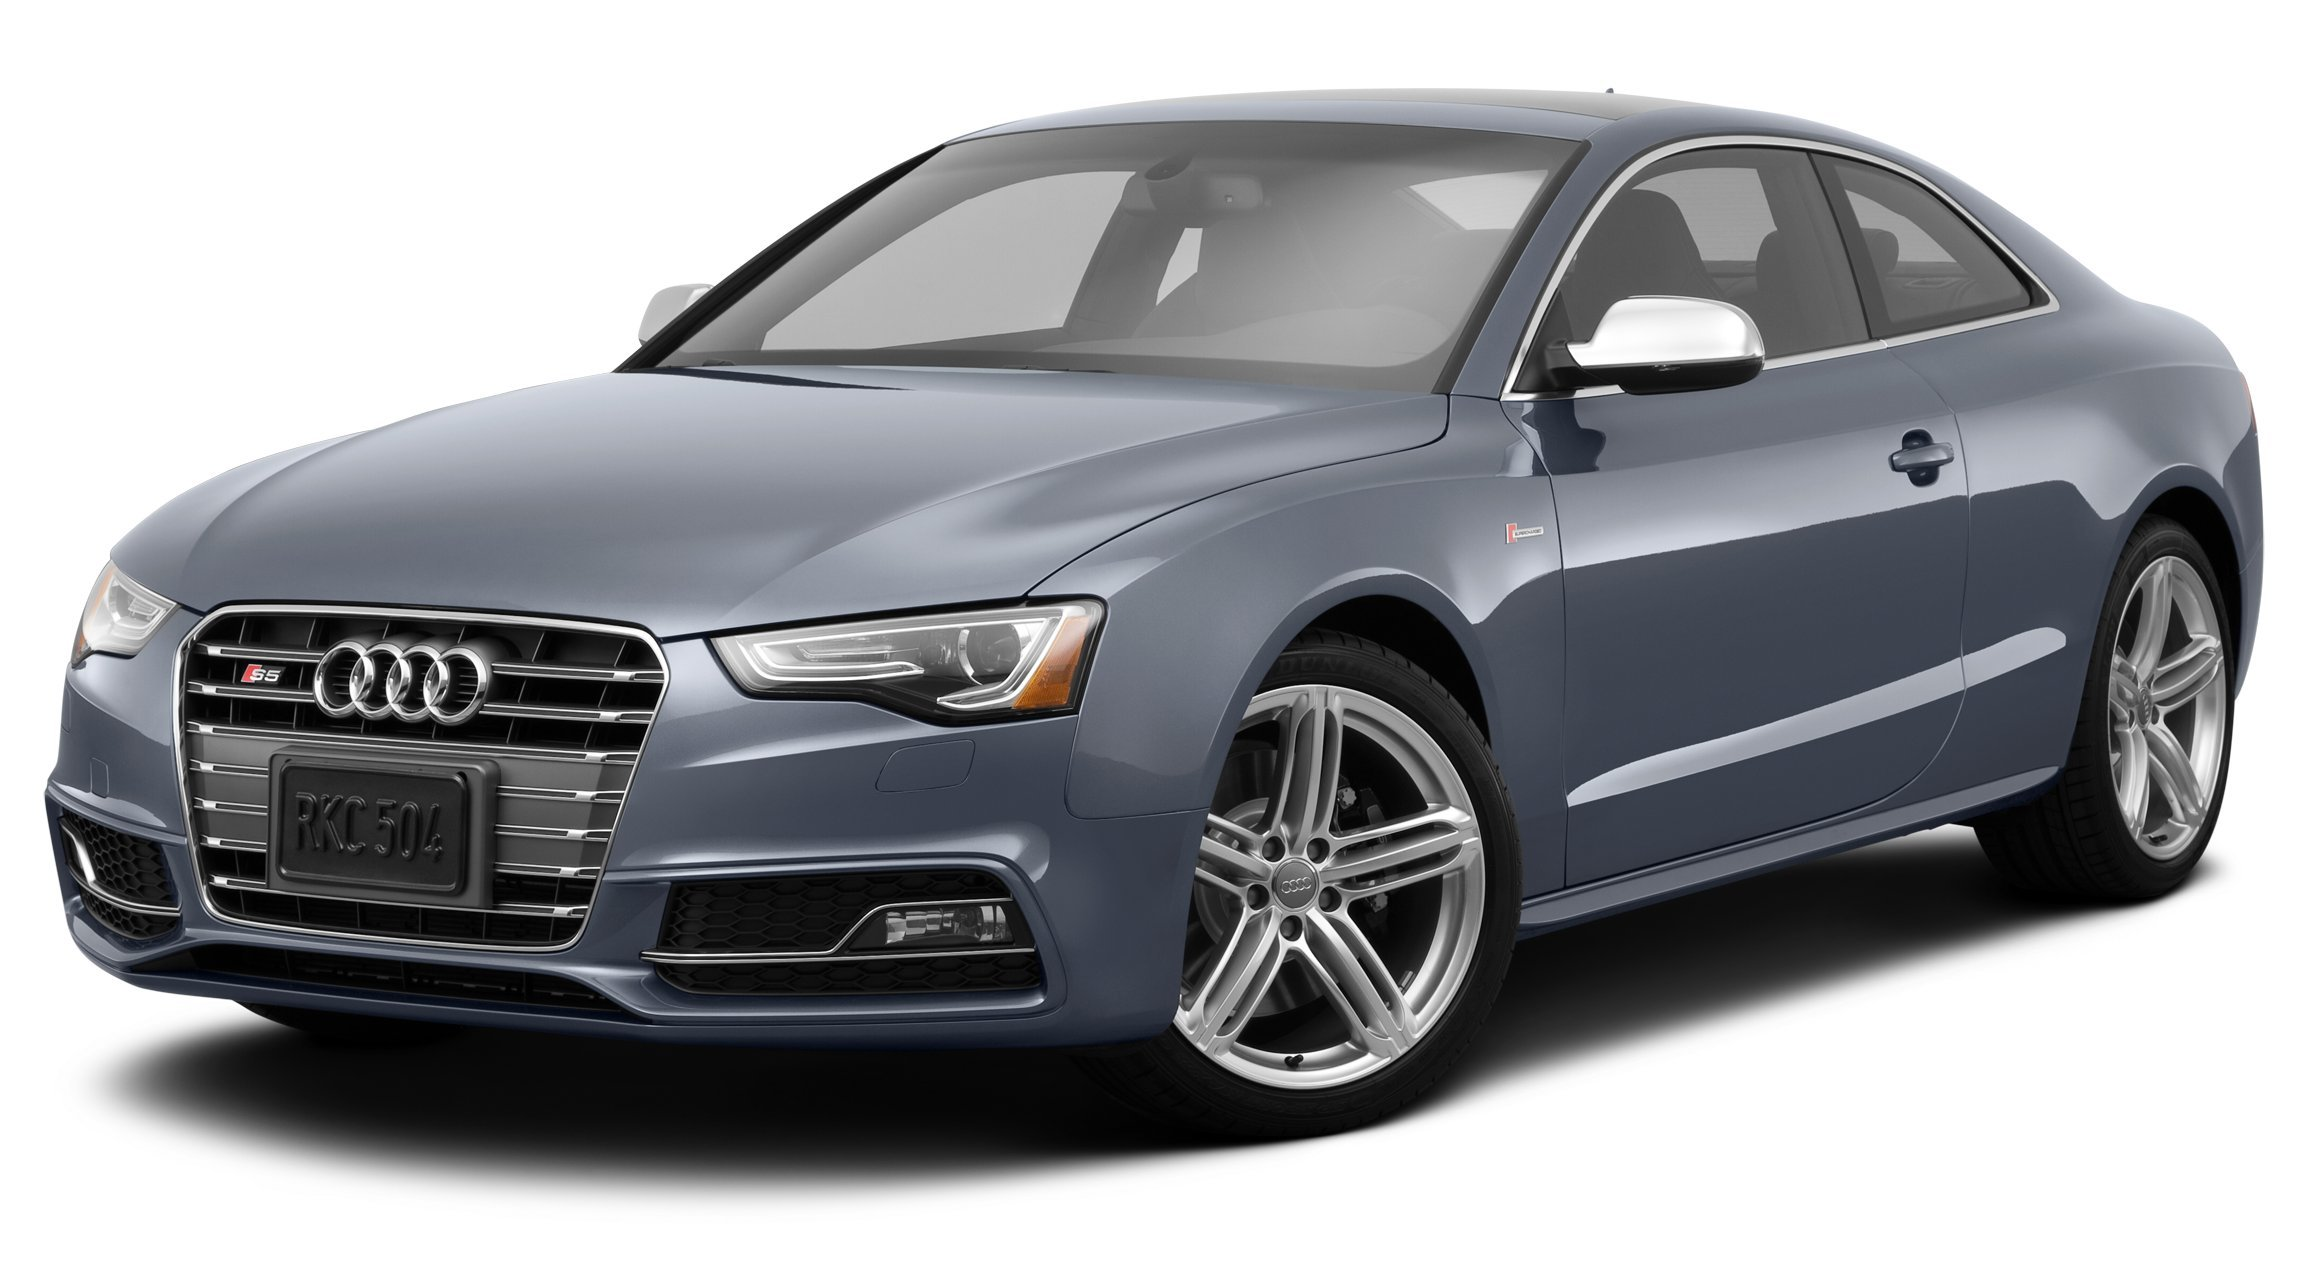 Amazon 2014 Audi RS5 Reviews and Specs Vehicles